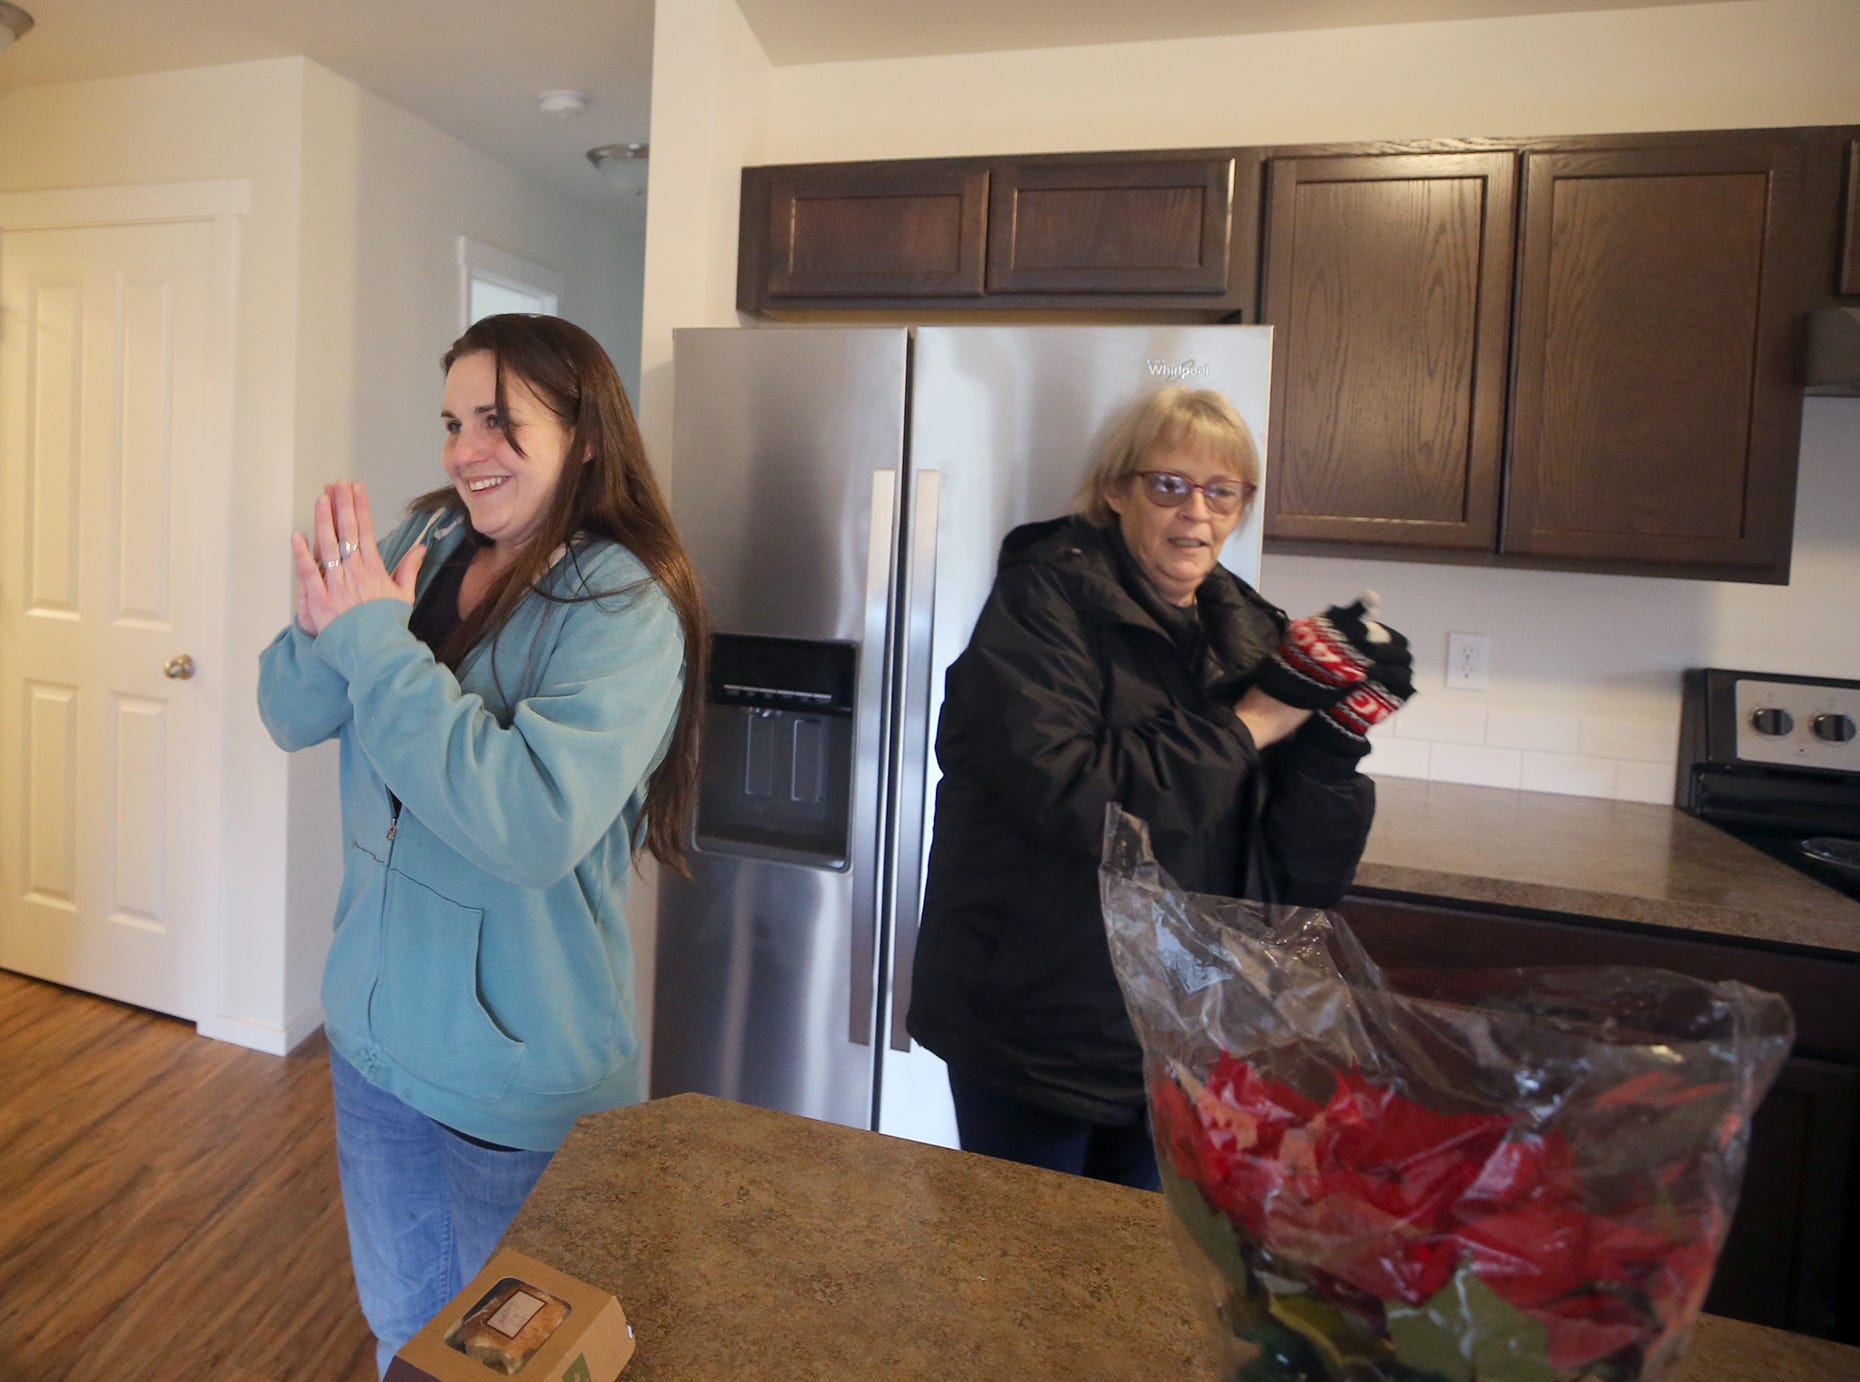 Elizabeth Stranberg is happy after going inside her new home after the Housing Kitsap at the opening ceremony of the Maple Lane Group One Kitsap Housing development in Kington on Friday, December 14, 2018. She is one of the new home owners.